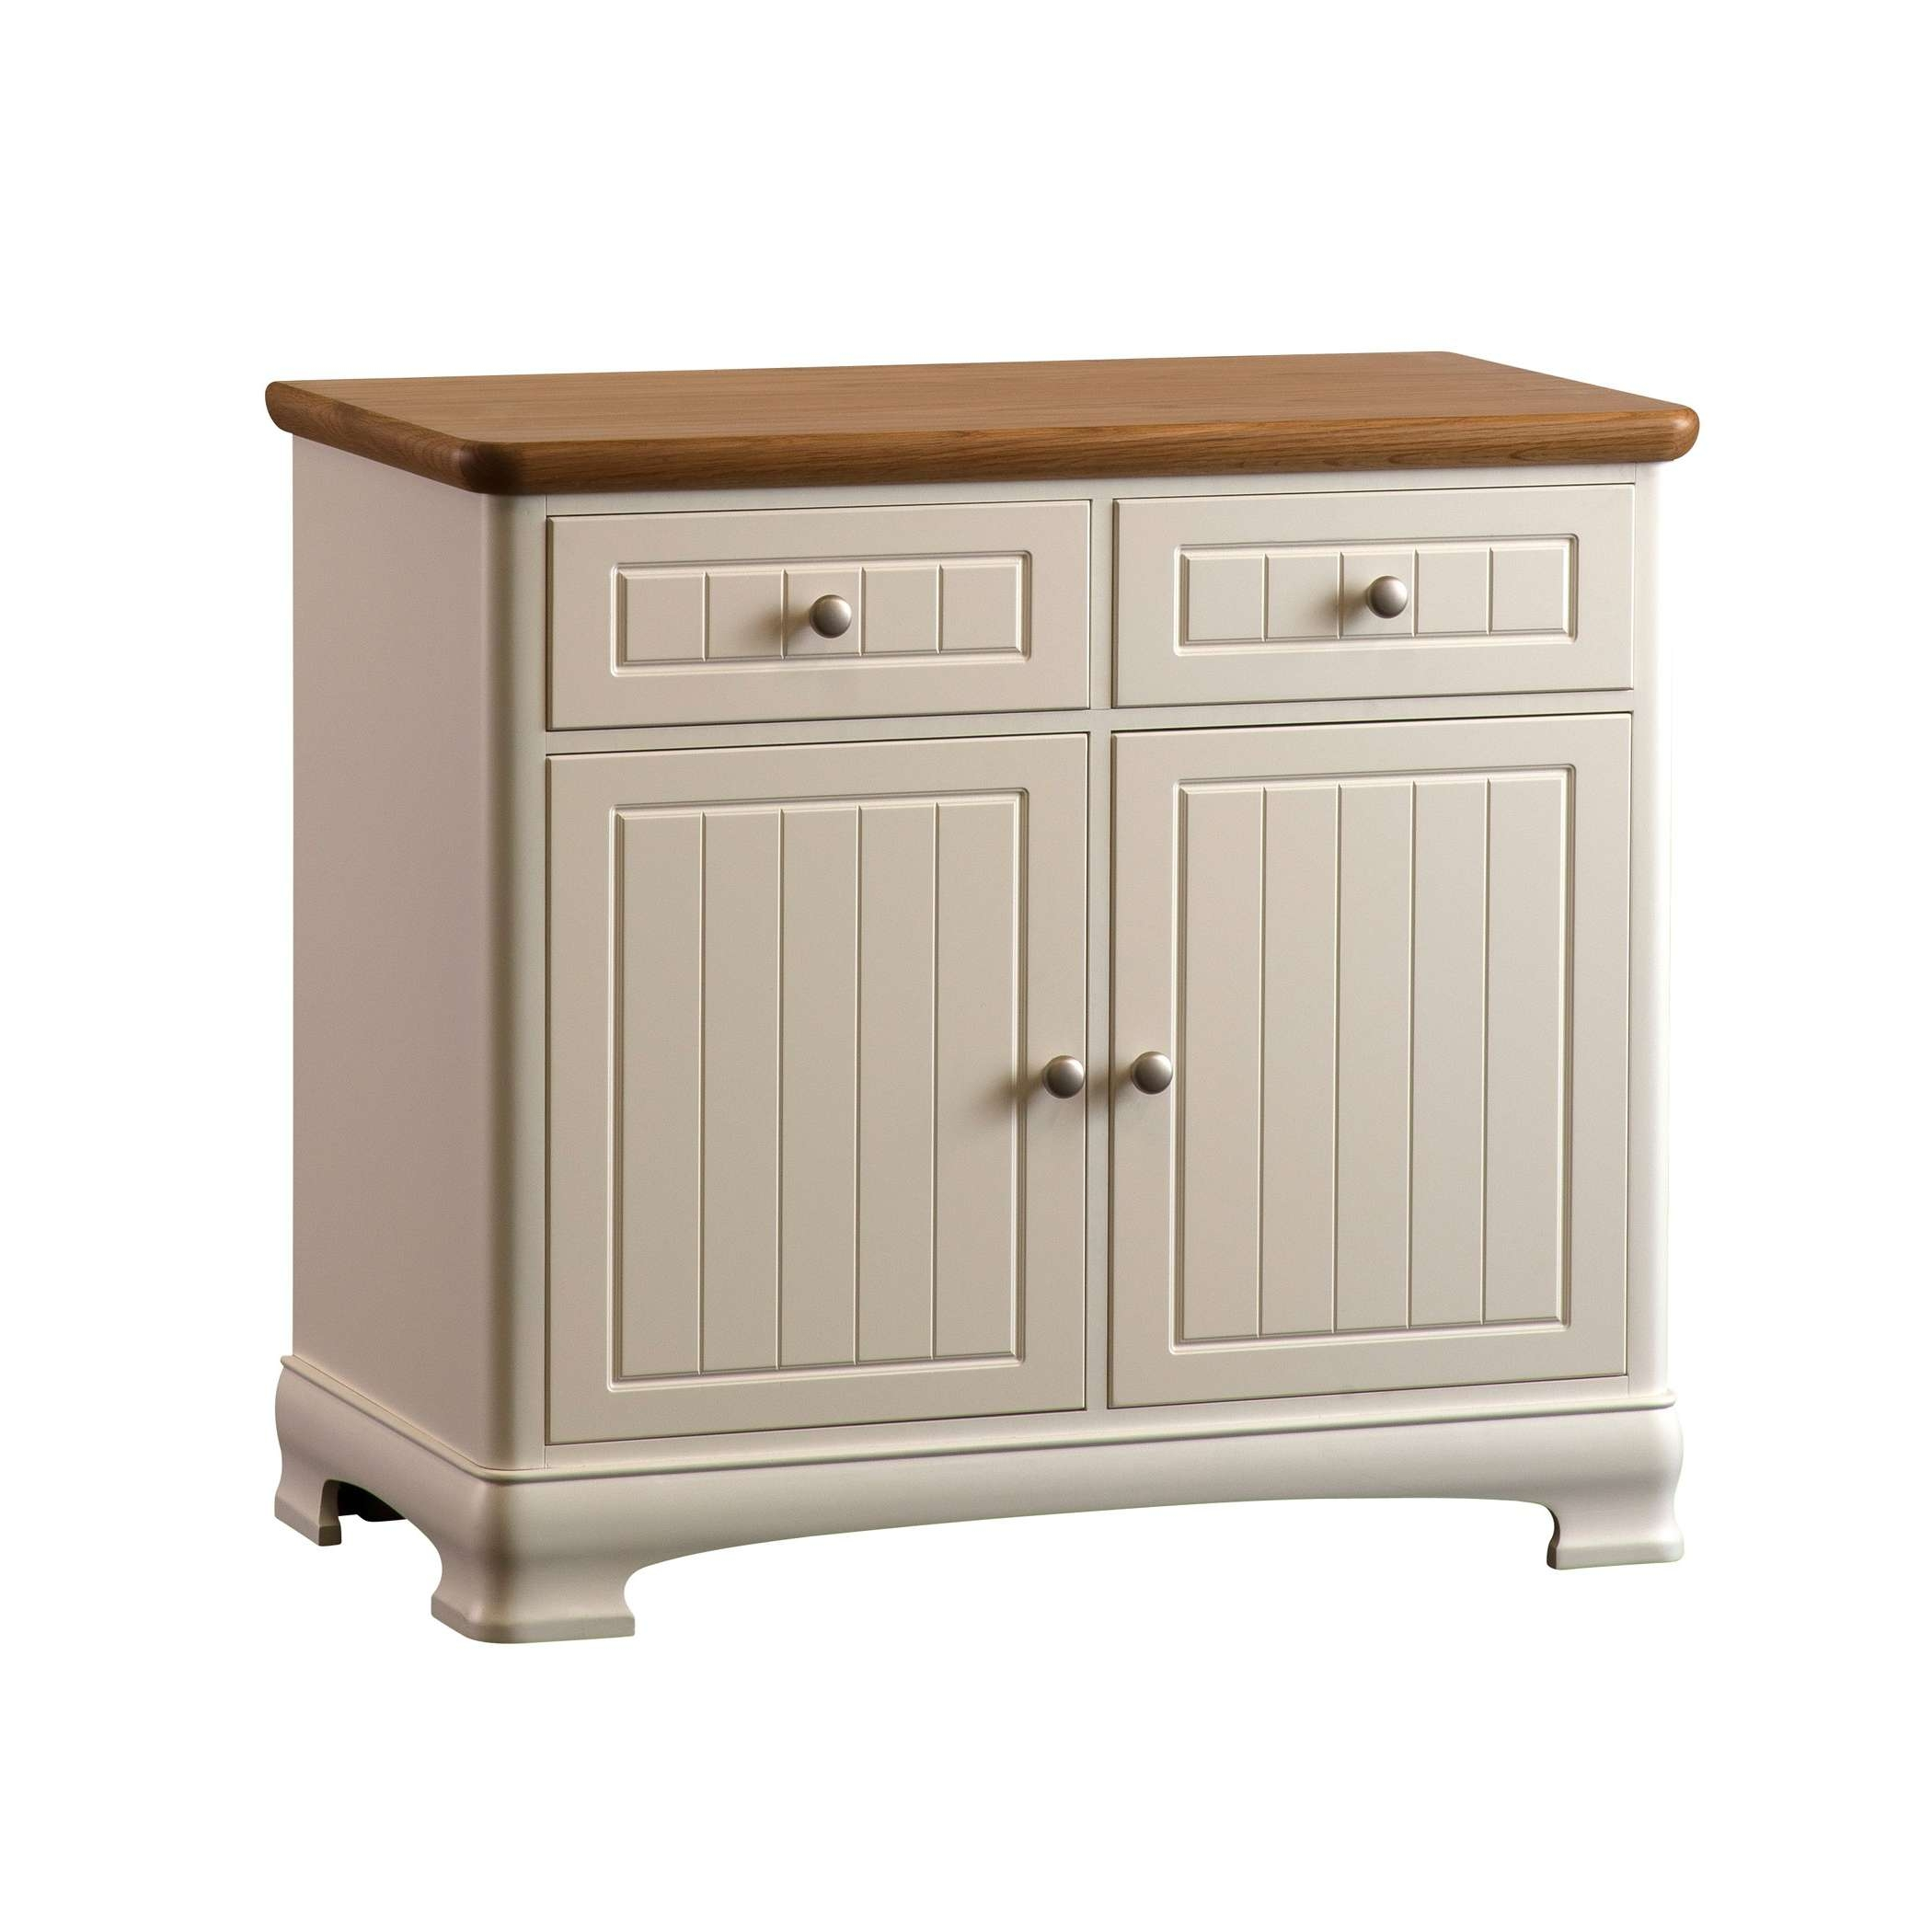 Sideboards: Awesome Small Sideboard Furniture Sideboard Table Intended For Small Narrow Sideboards (View 3 of 20)